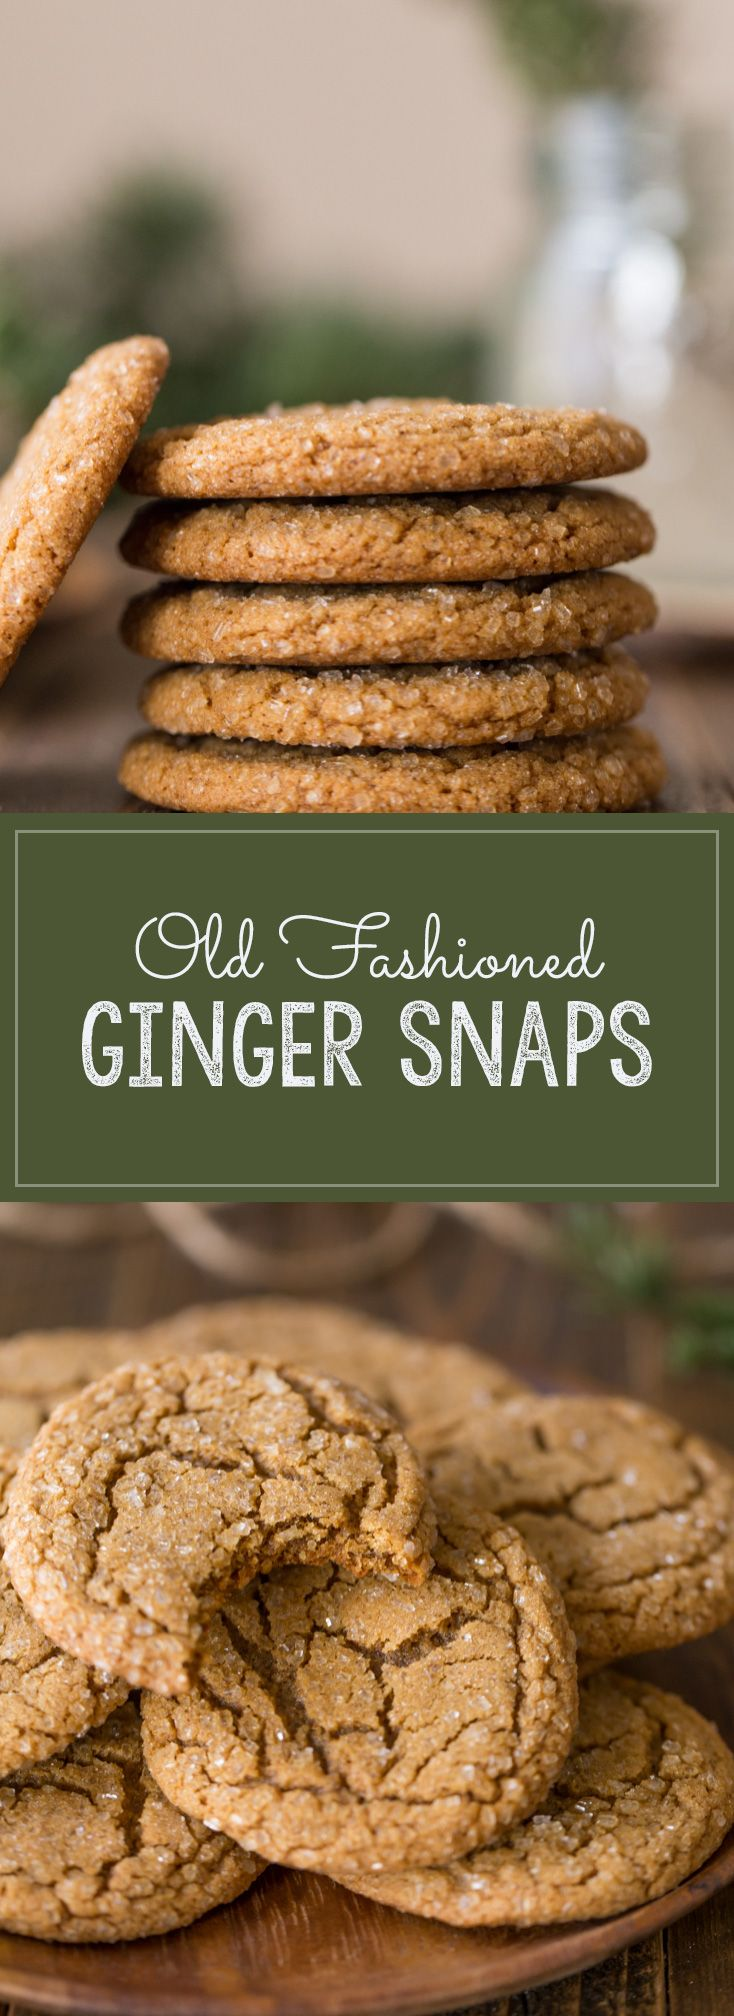 I love these Old Fashioned Ginger Snaps with their sparkling sugary exterior, crisp edge and slightly chewy center!